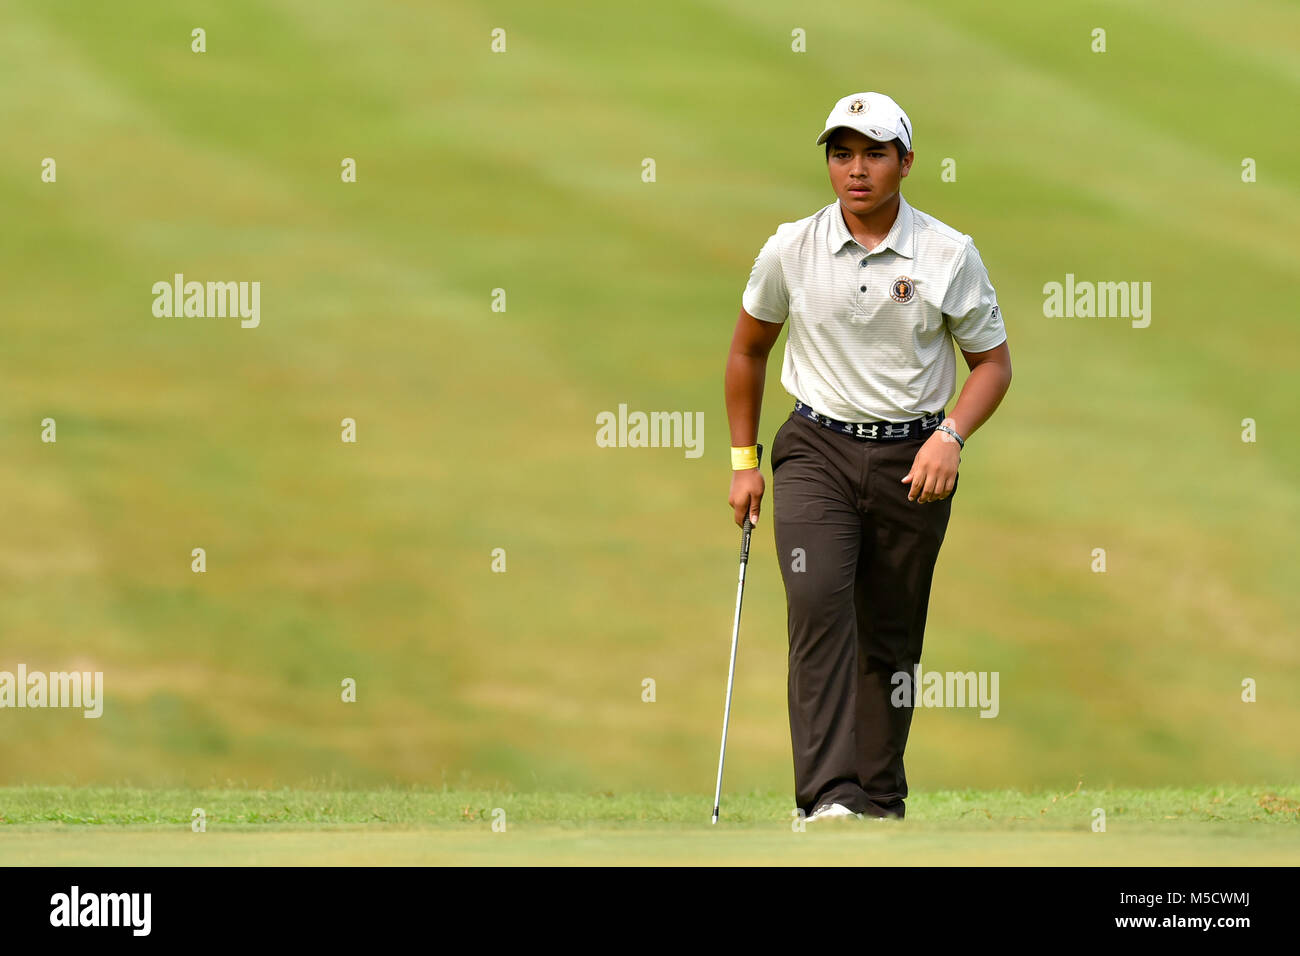 Danau, UKM Bangi - FEBRUARY 10: Hadi Irfan walks across on the 5th green during Round One of the Danau Junior Championship - Stock Image